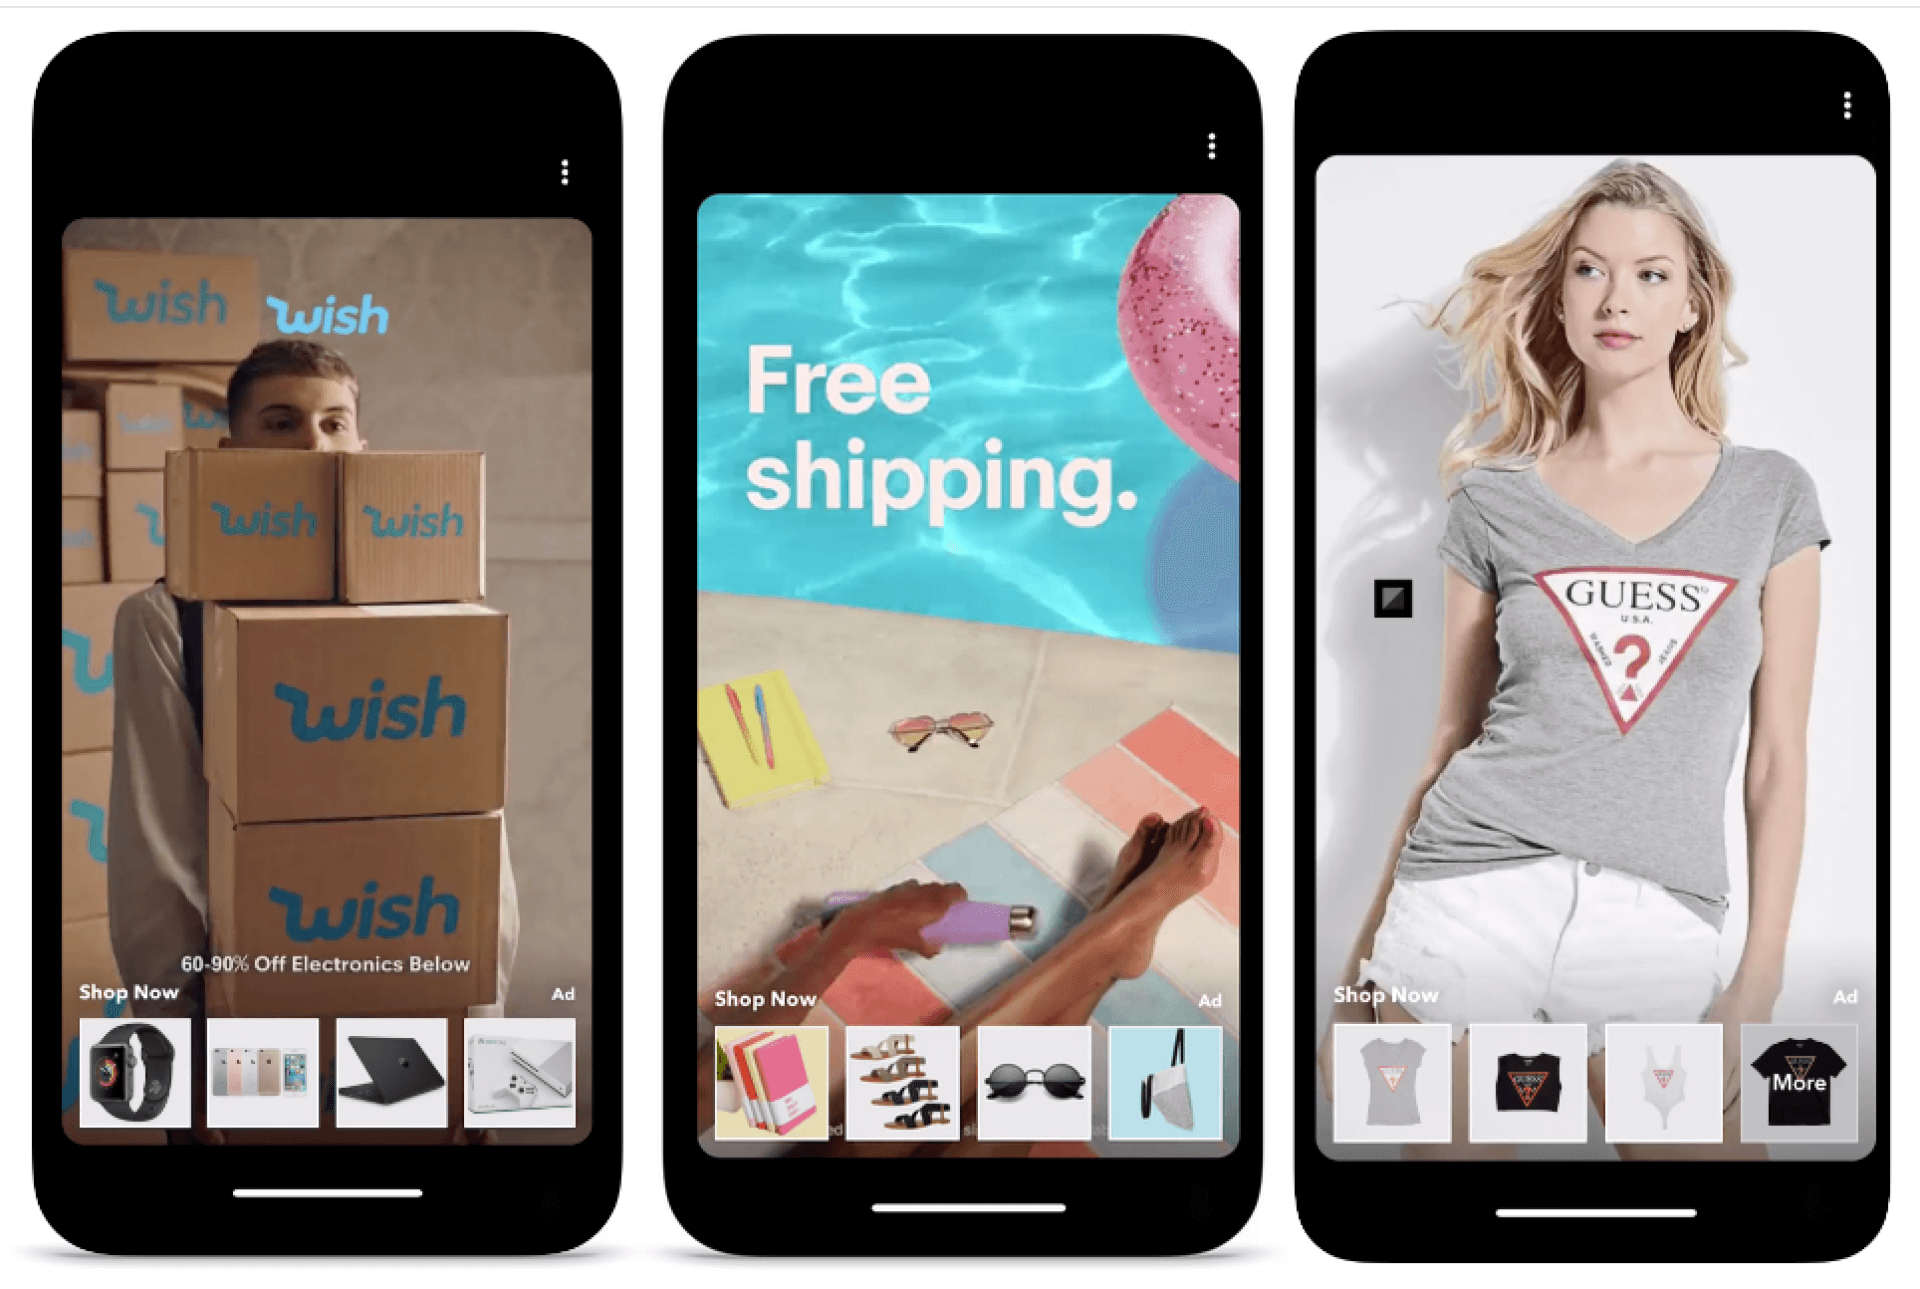 Snapchat pairs up with Amazon to let you shop using your camera